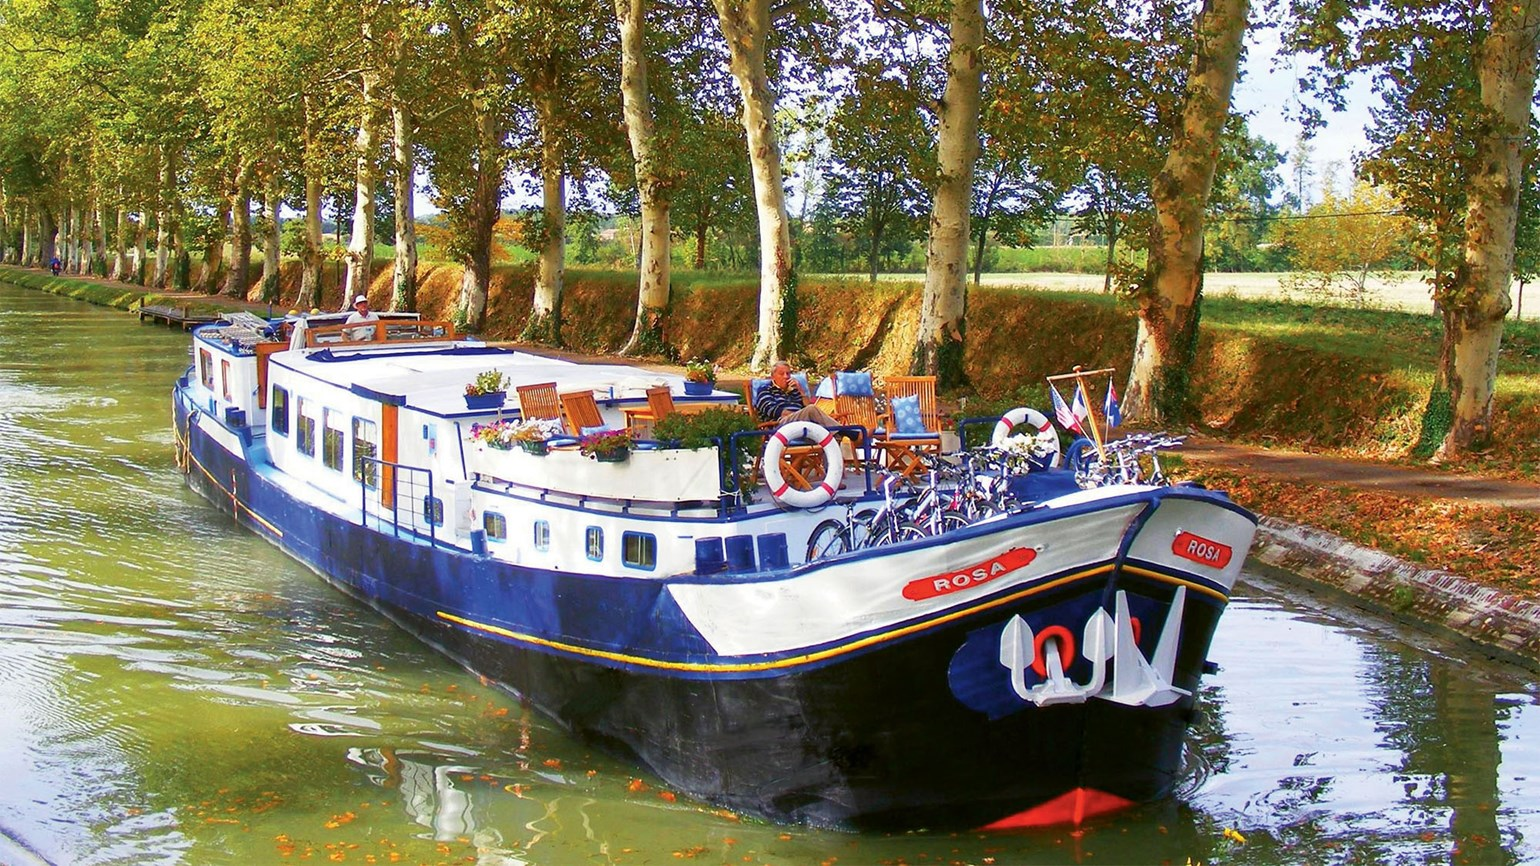 European Waterways features 'Early Bird' discounts on select 2017 cruises